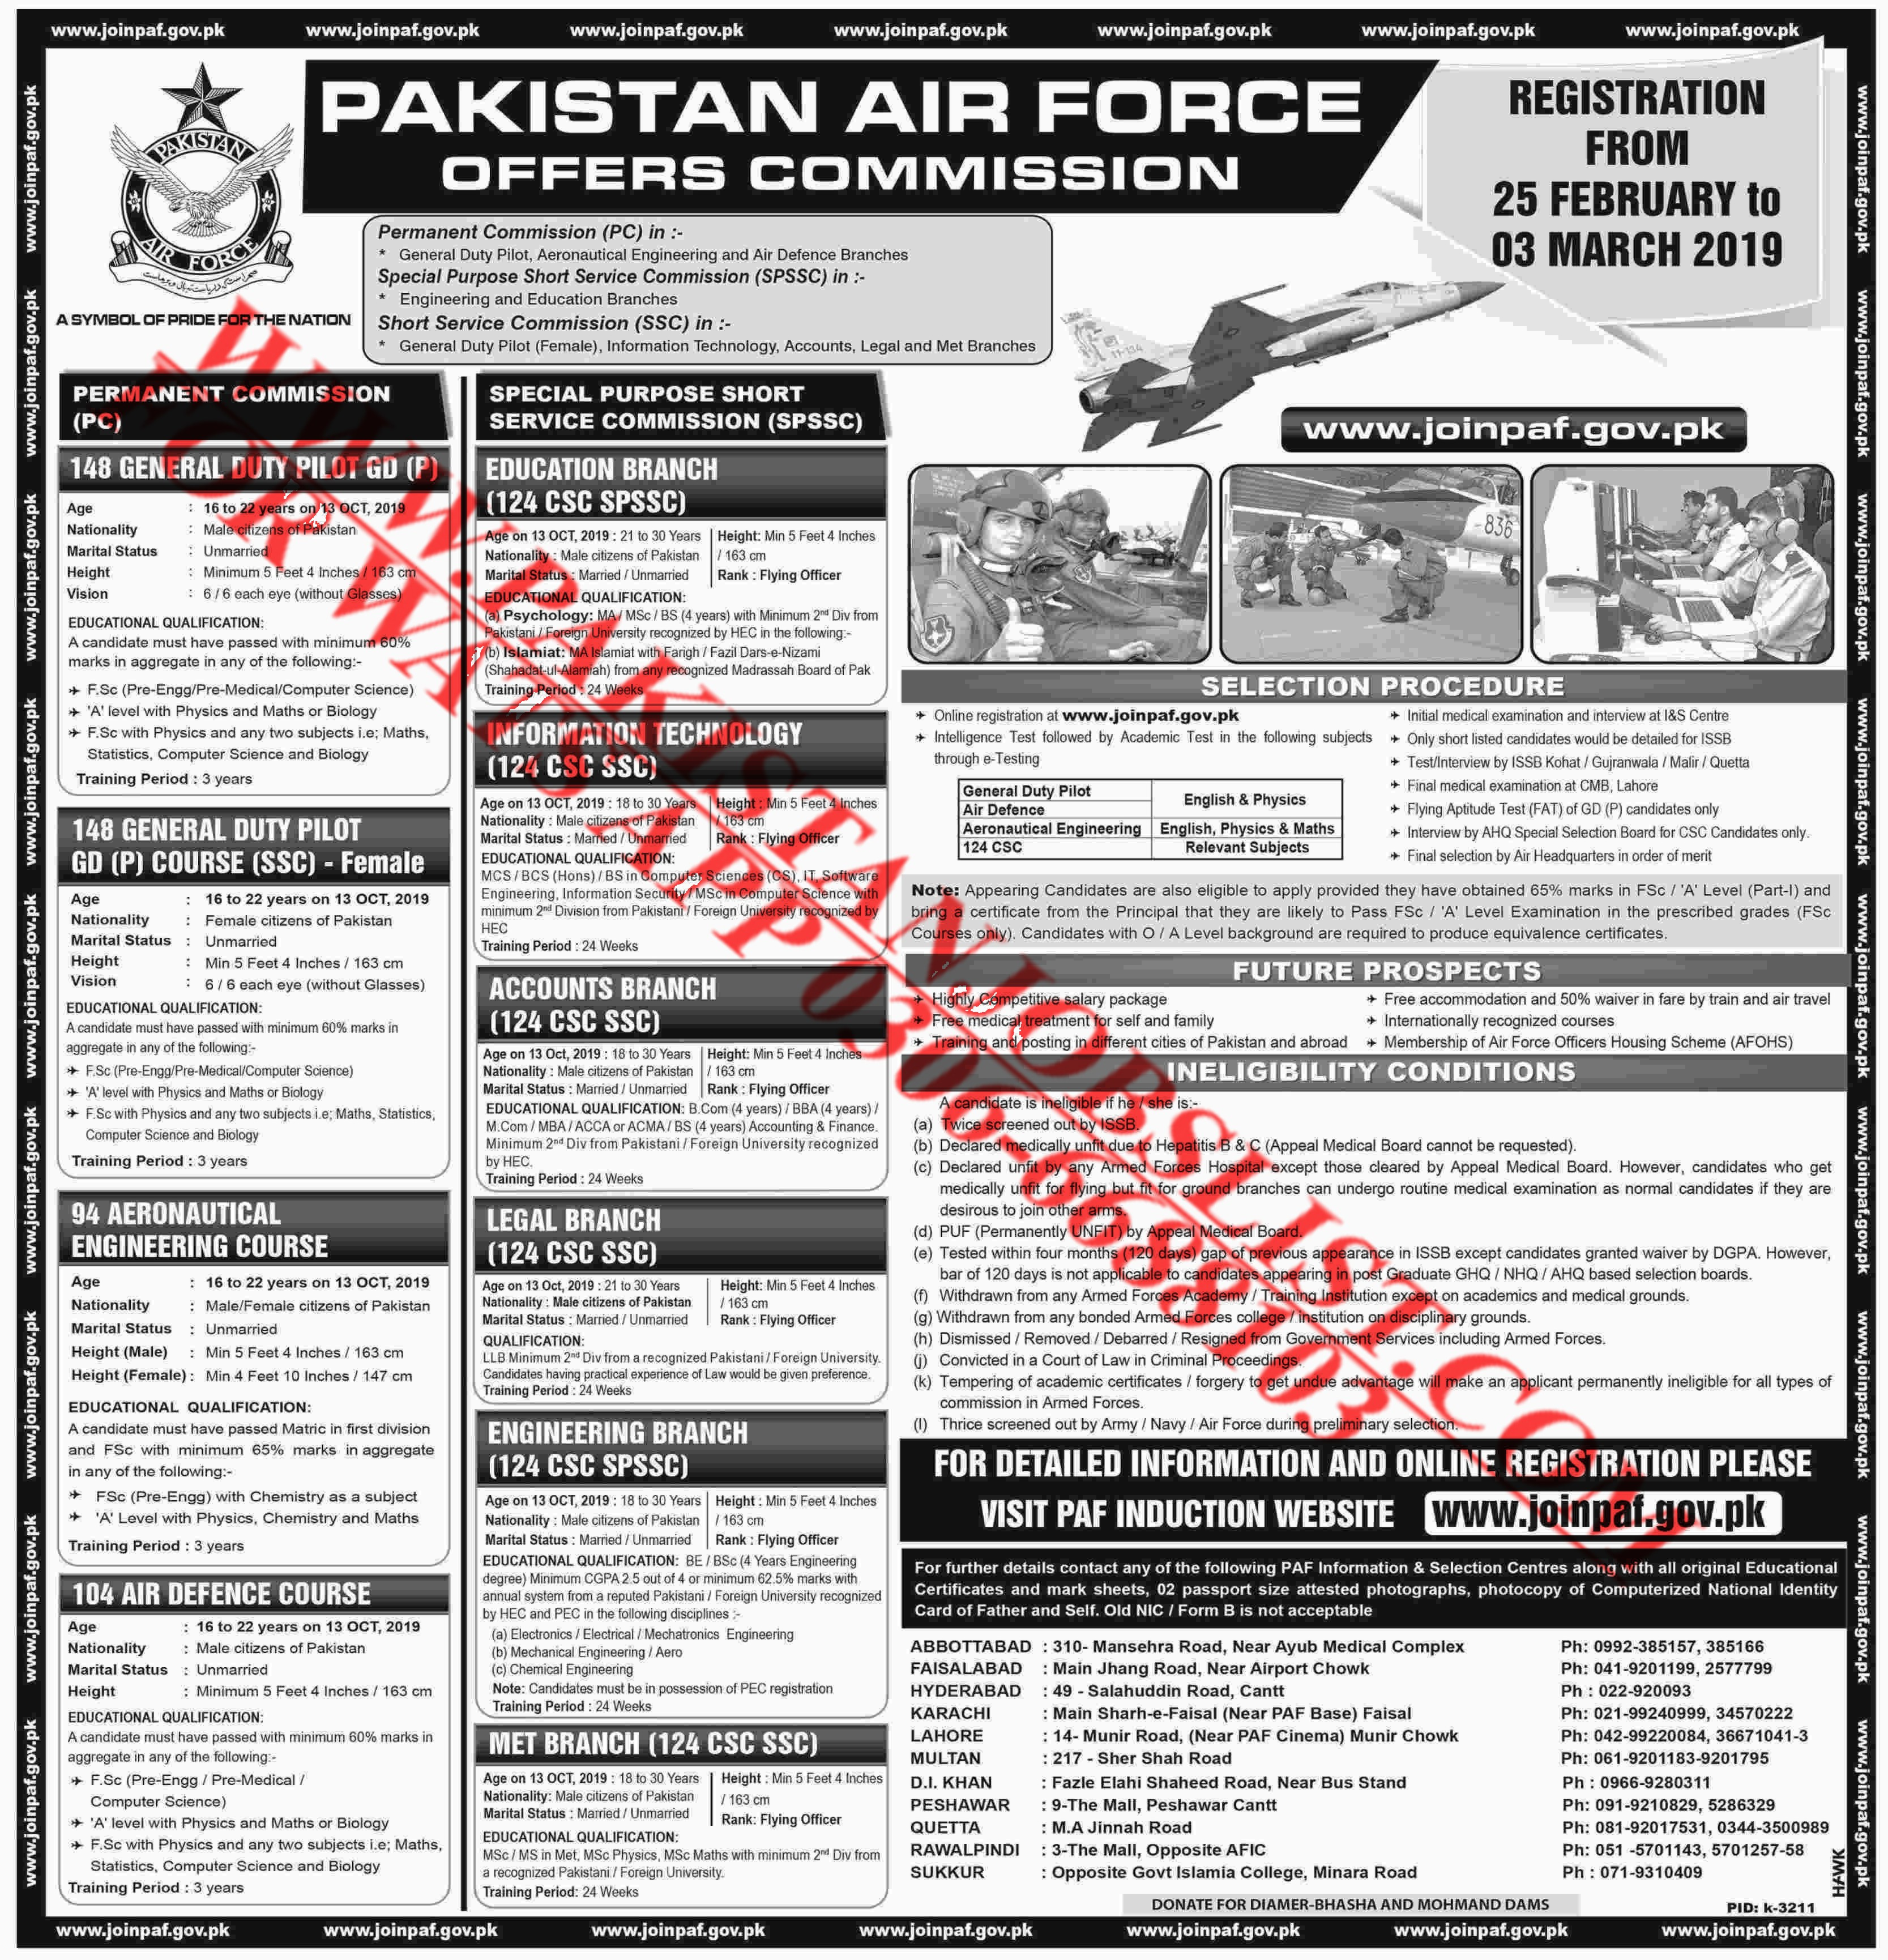 Join Pakistan Air Force as Permanent Commissioned Officer